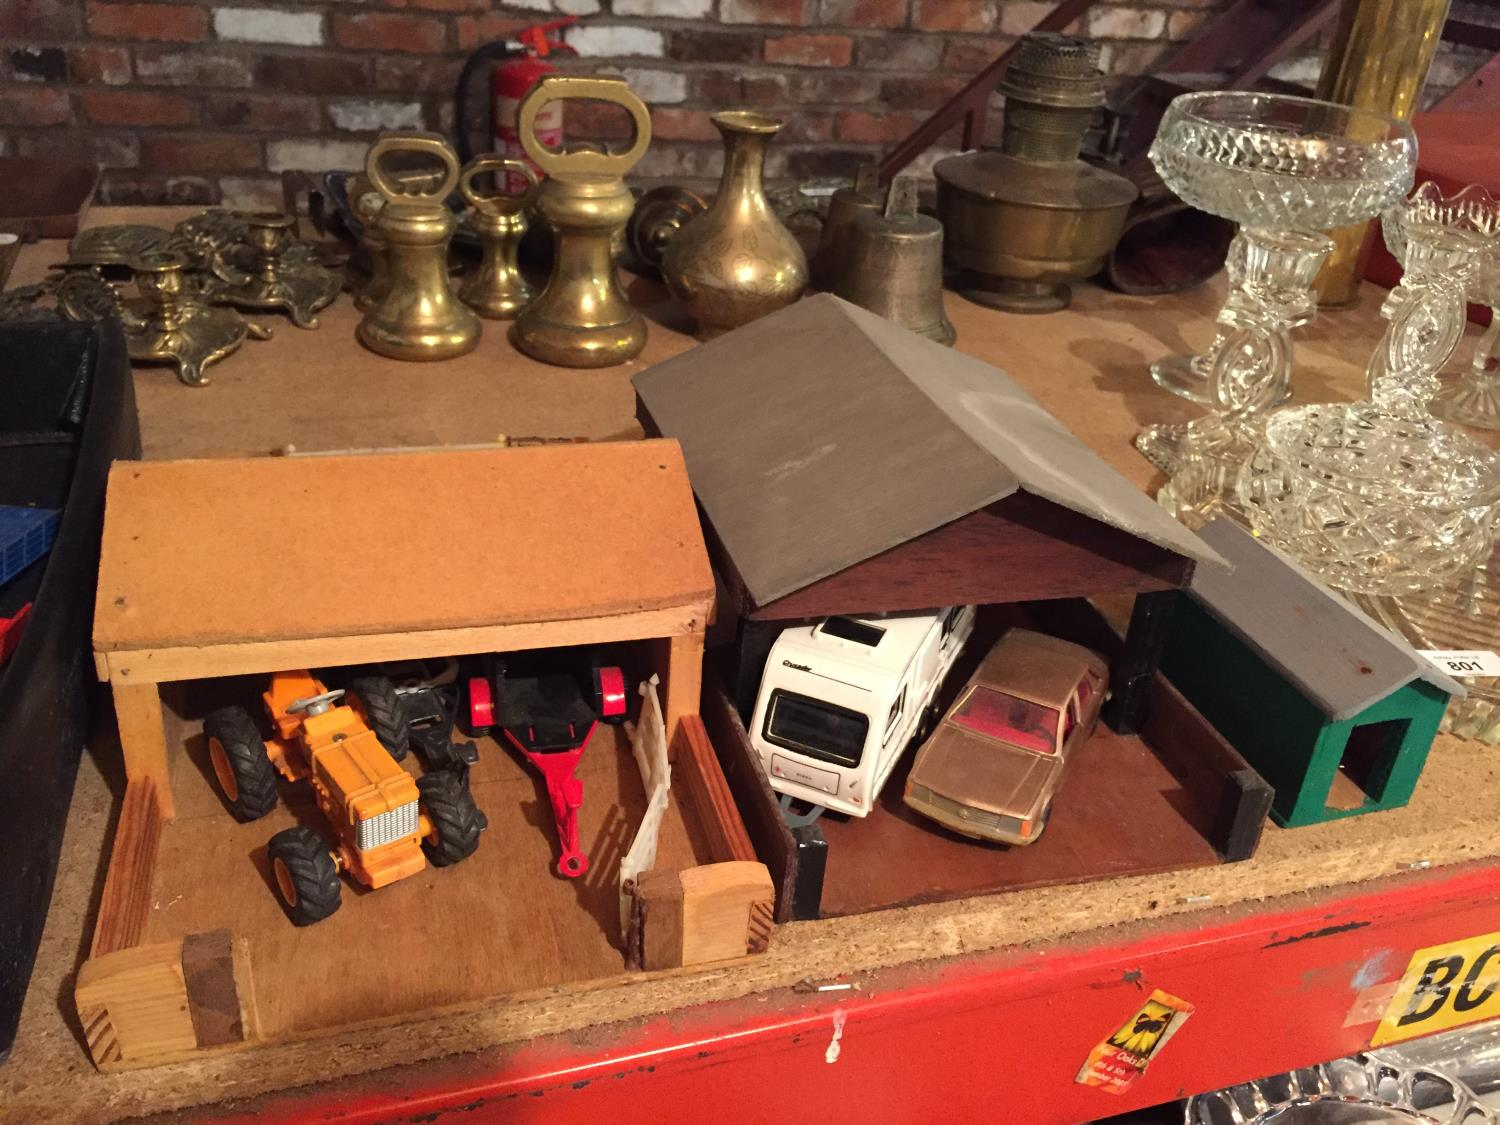 THREE WOODEN BUILDINGS WITH VEHICLES TO INCLUDE A TRACTOR AND TRAILERS, CARAVAN,CAR - Image 2 of 6